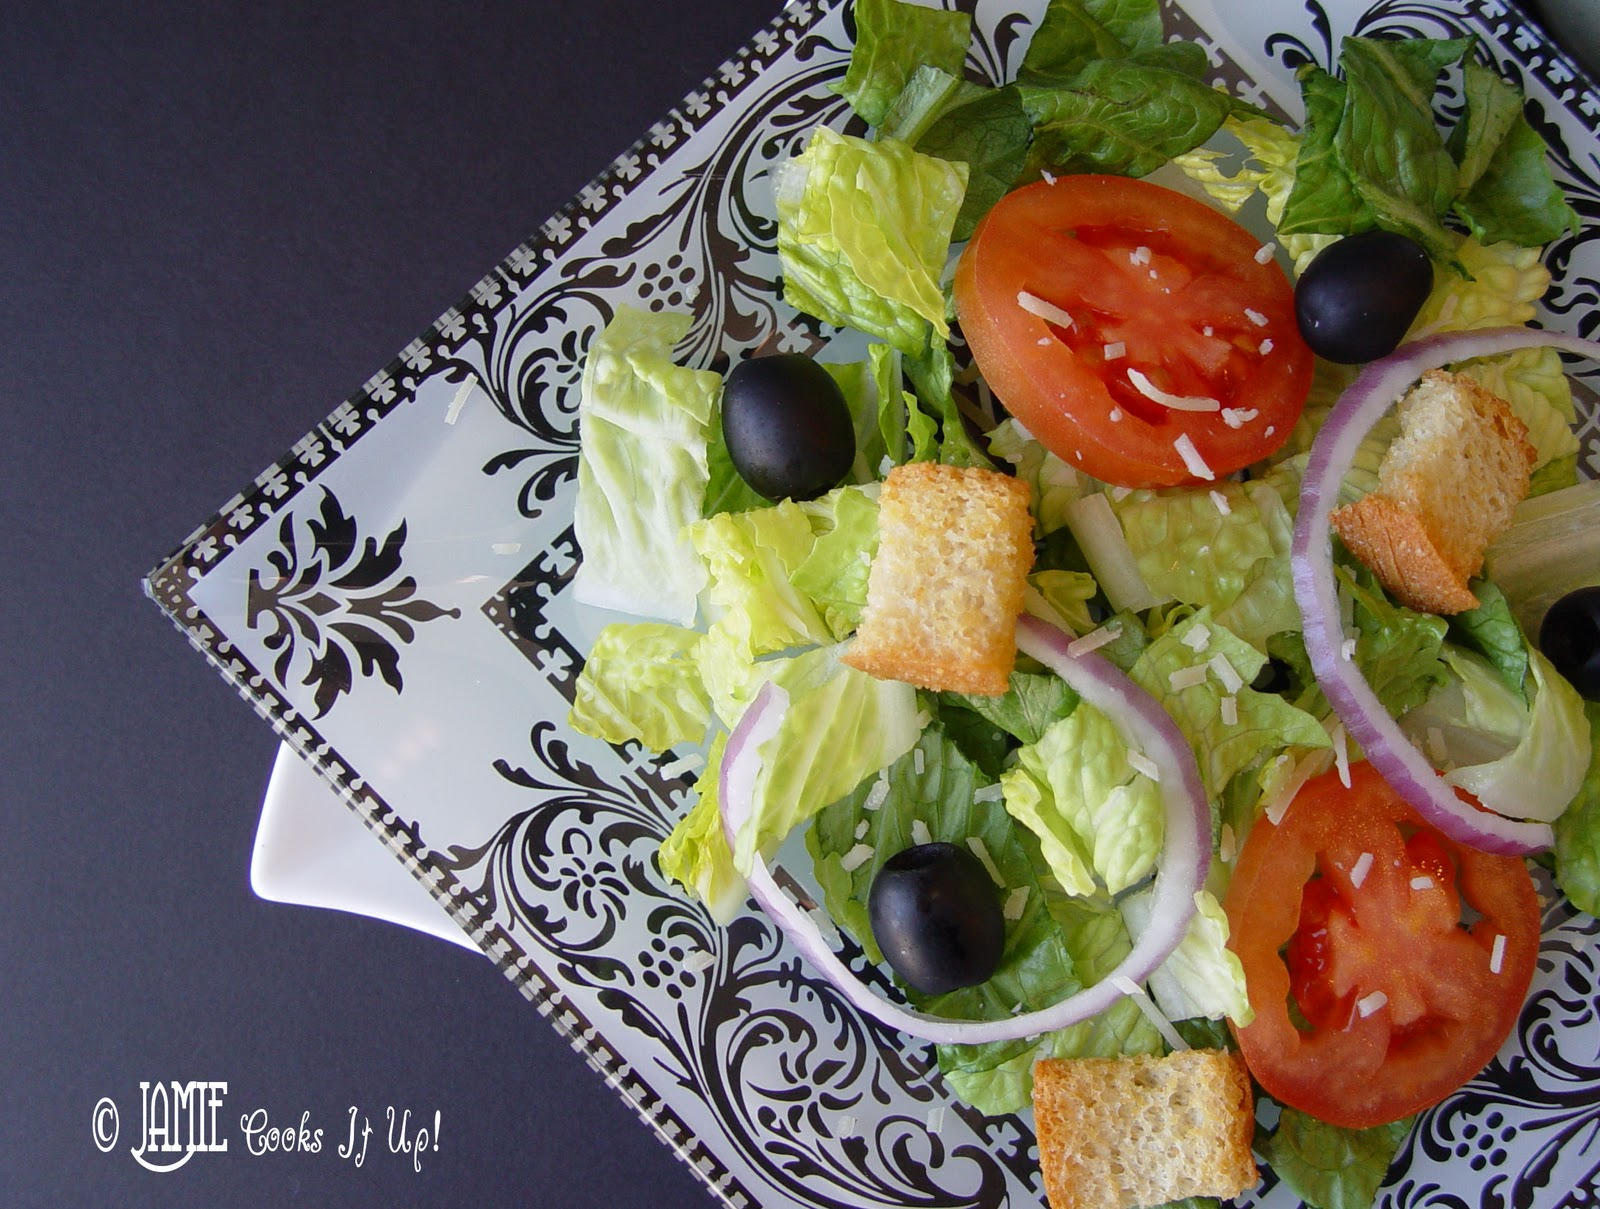 Olive garden salad with homemade dressing - Olive garden salad dressing recipes ...